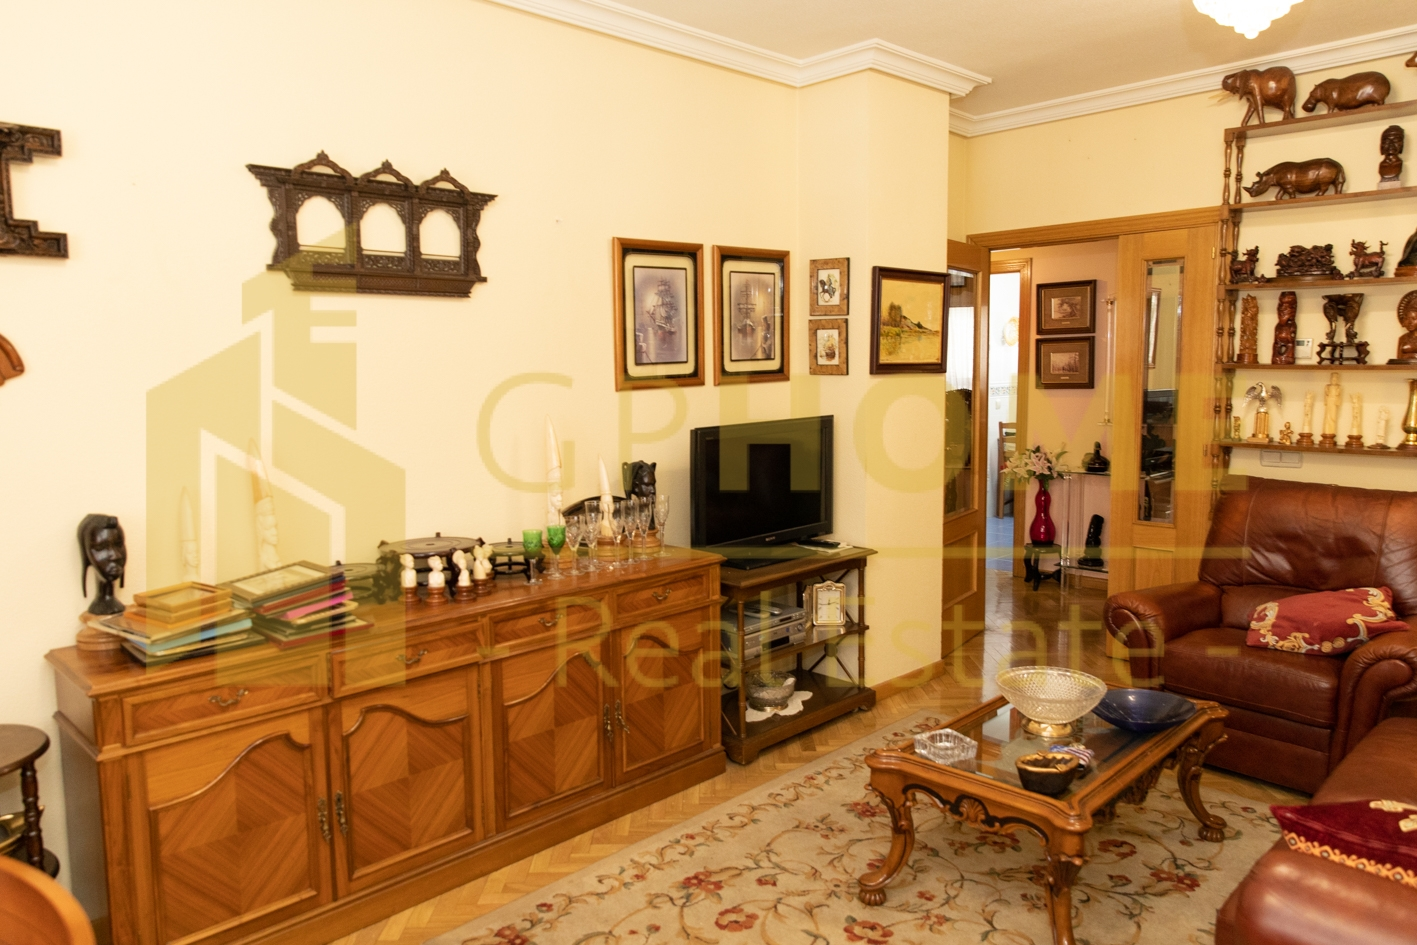 APARTMENT IN SANCHIDRIAN STREET IN THE CAMPAMENTO NEIGHBORHOOD IN MADRID